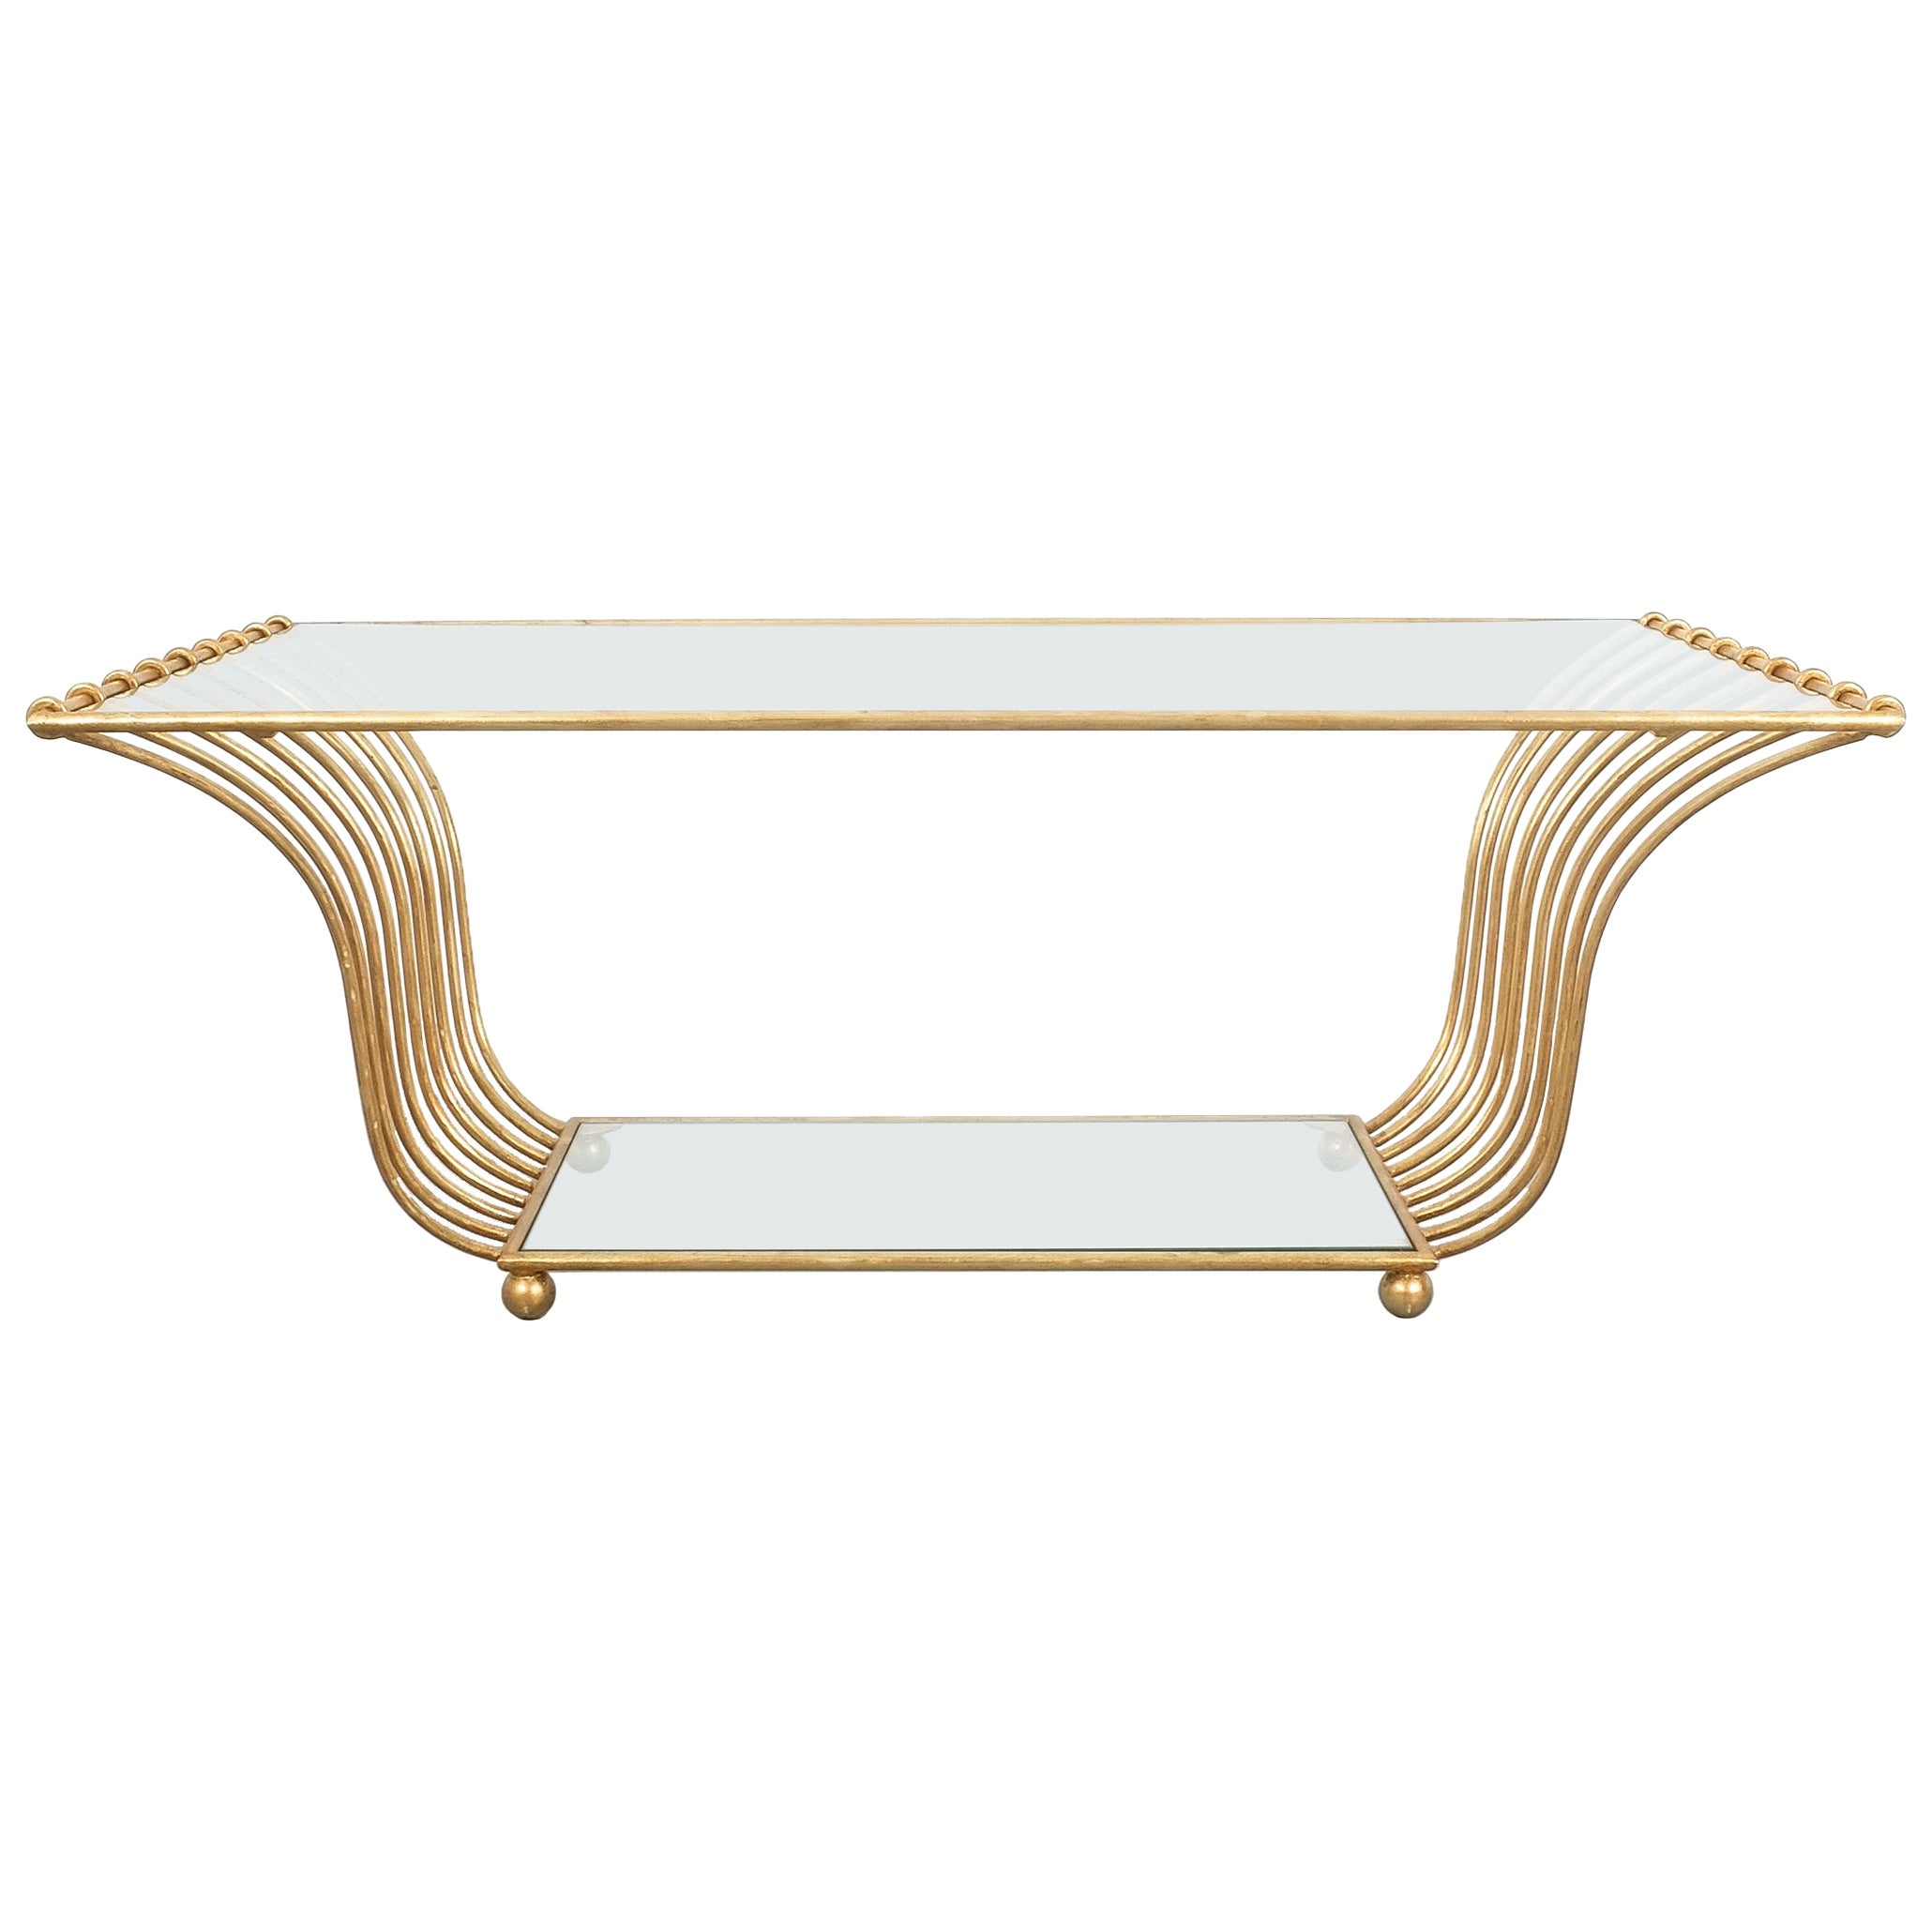 One of Two Golden Harp Coffee Tables